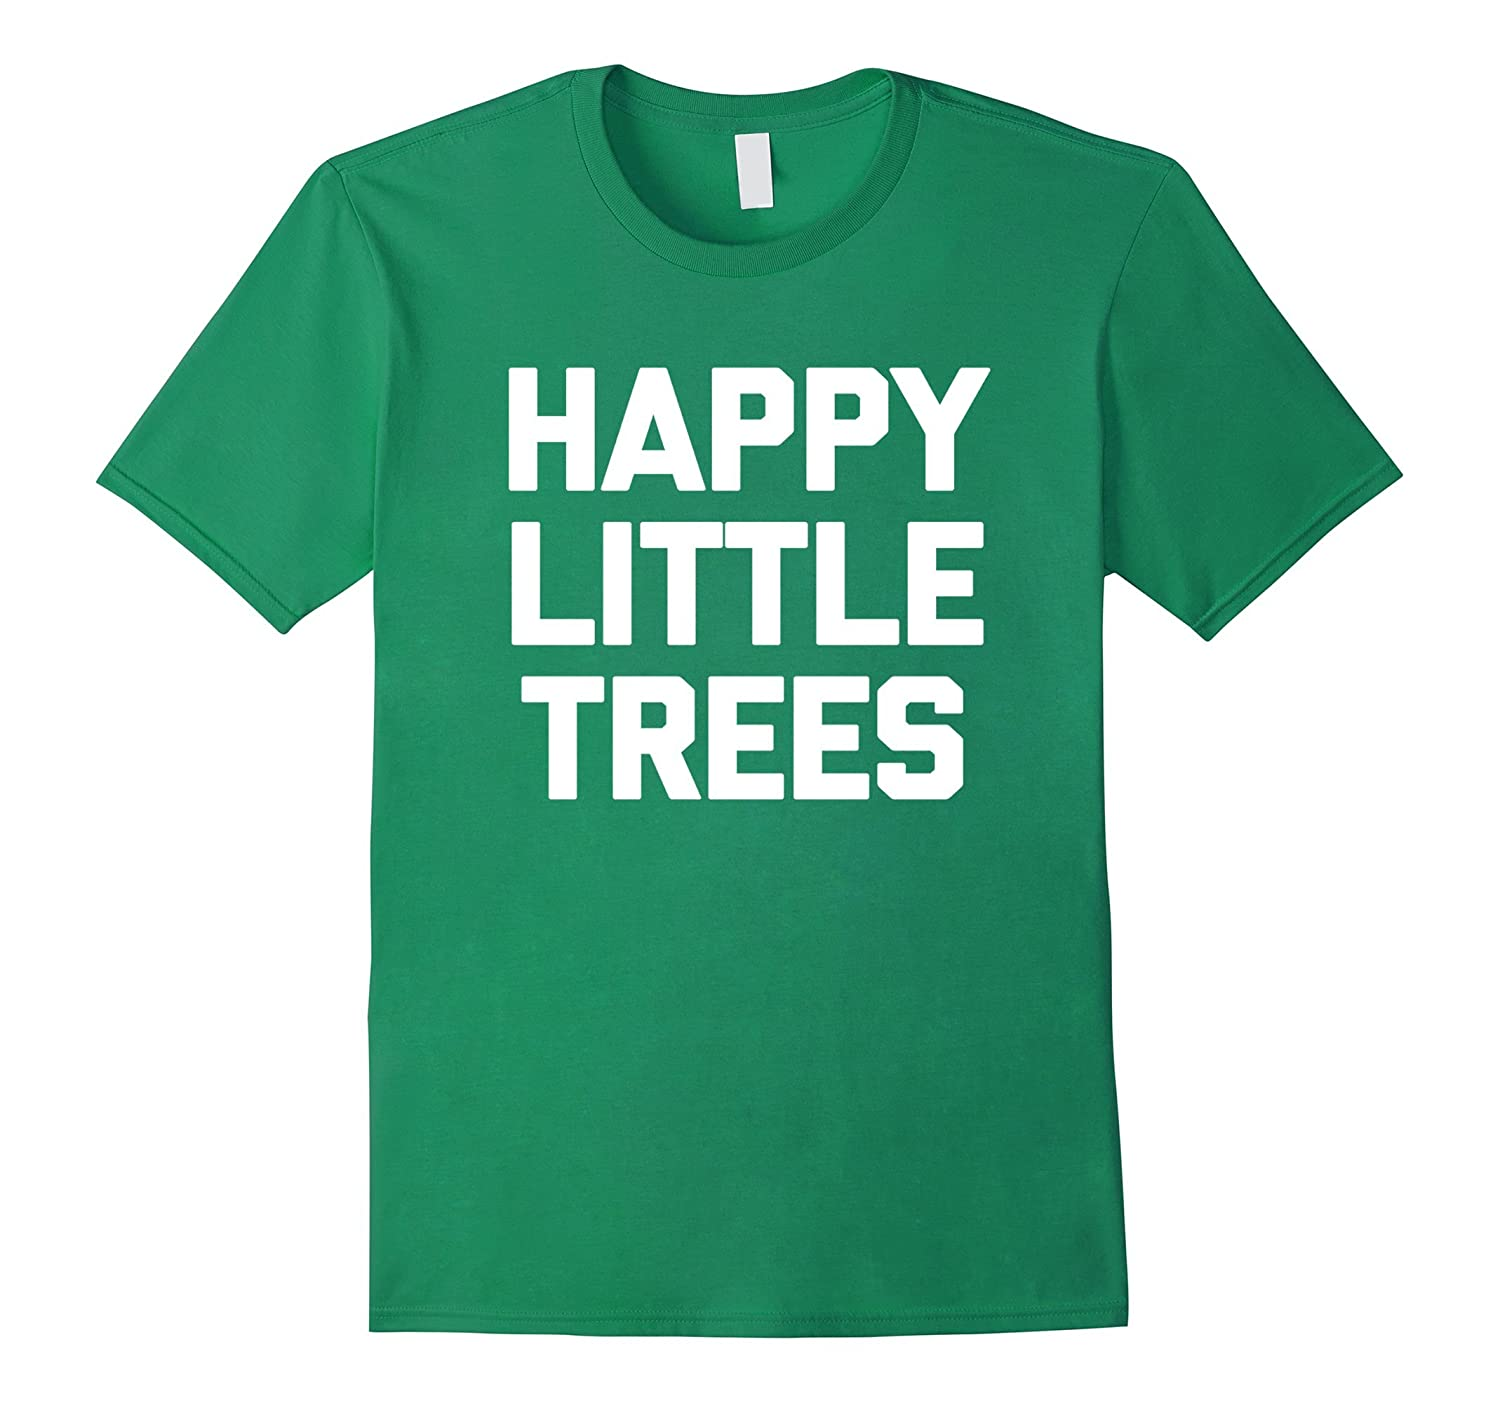 Happy Little Trees T-Shirt funny saying sarcastic novelty-RT